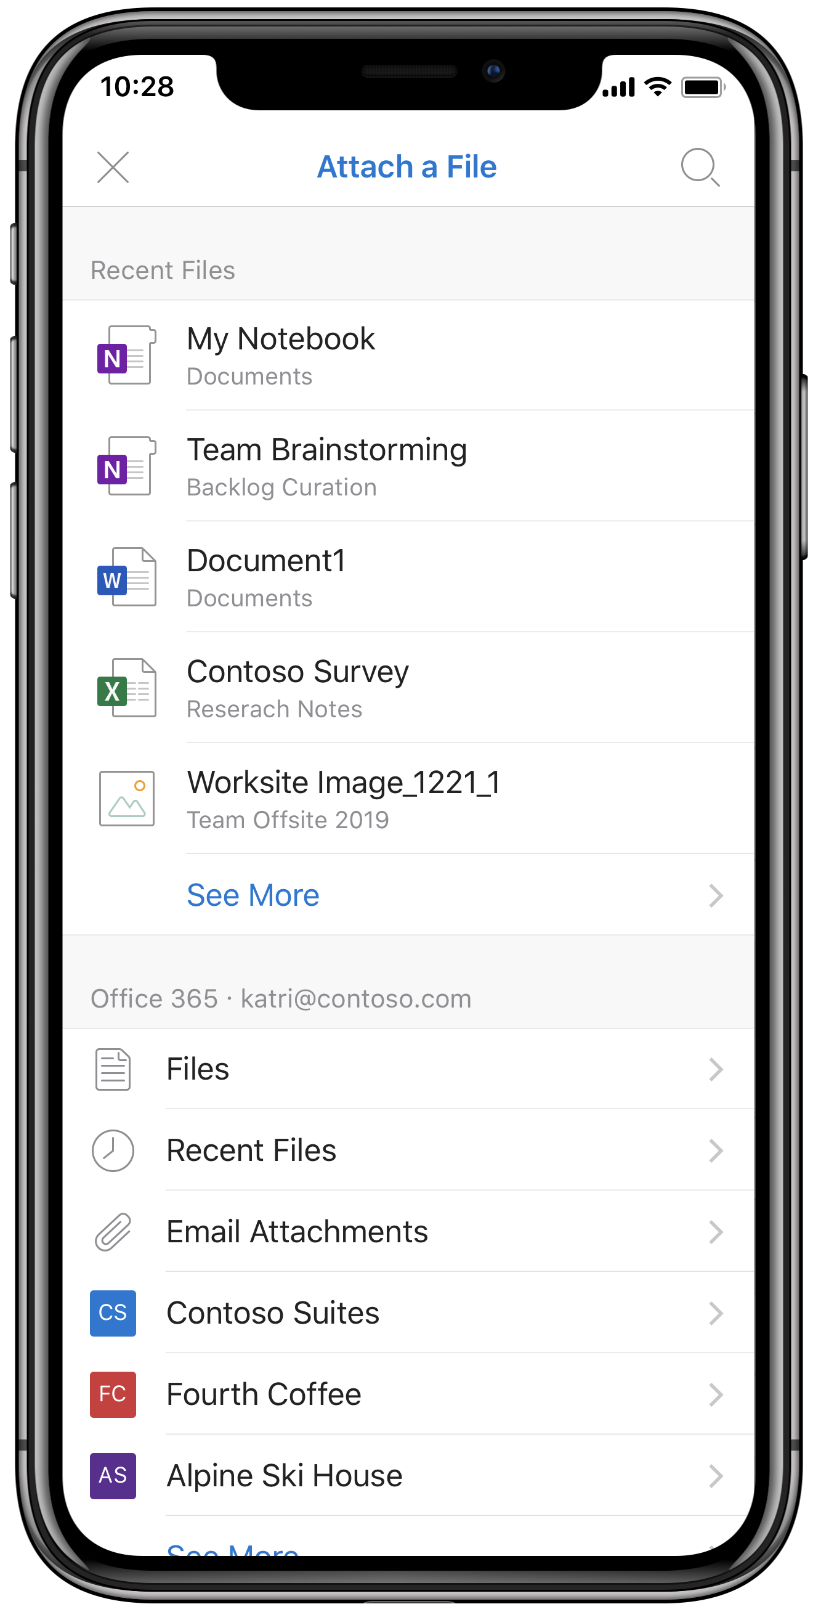 Screenshot of files being attached in Outlook for iOS.